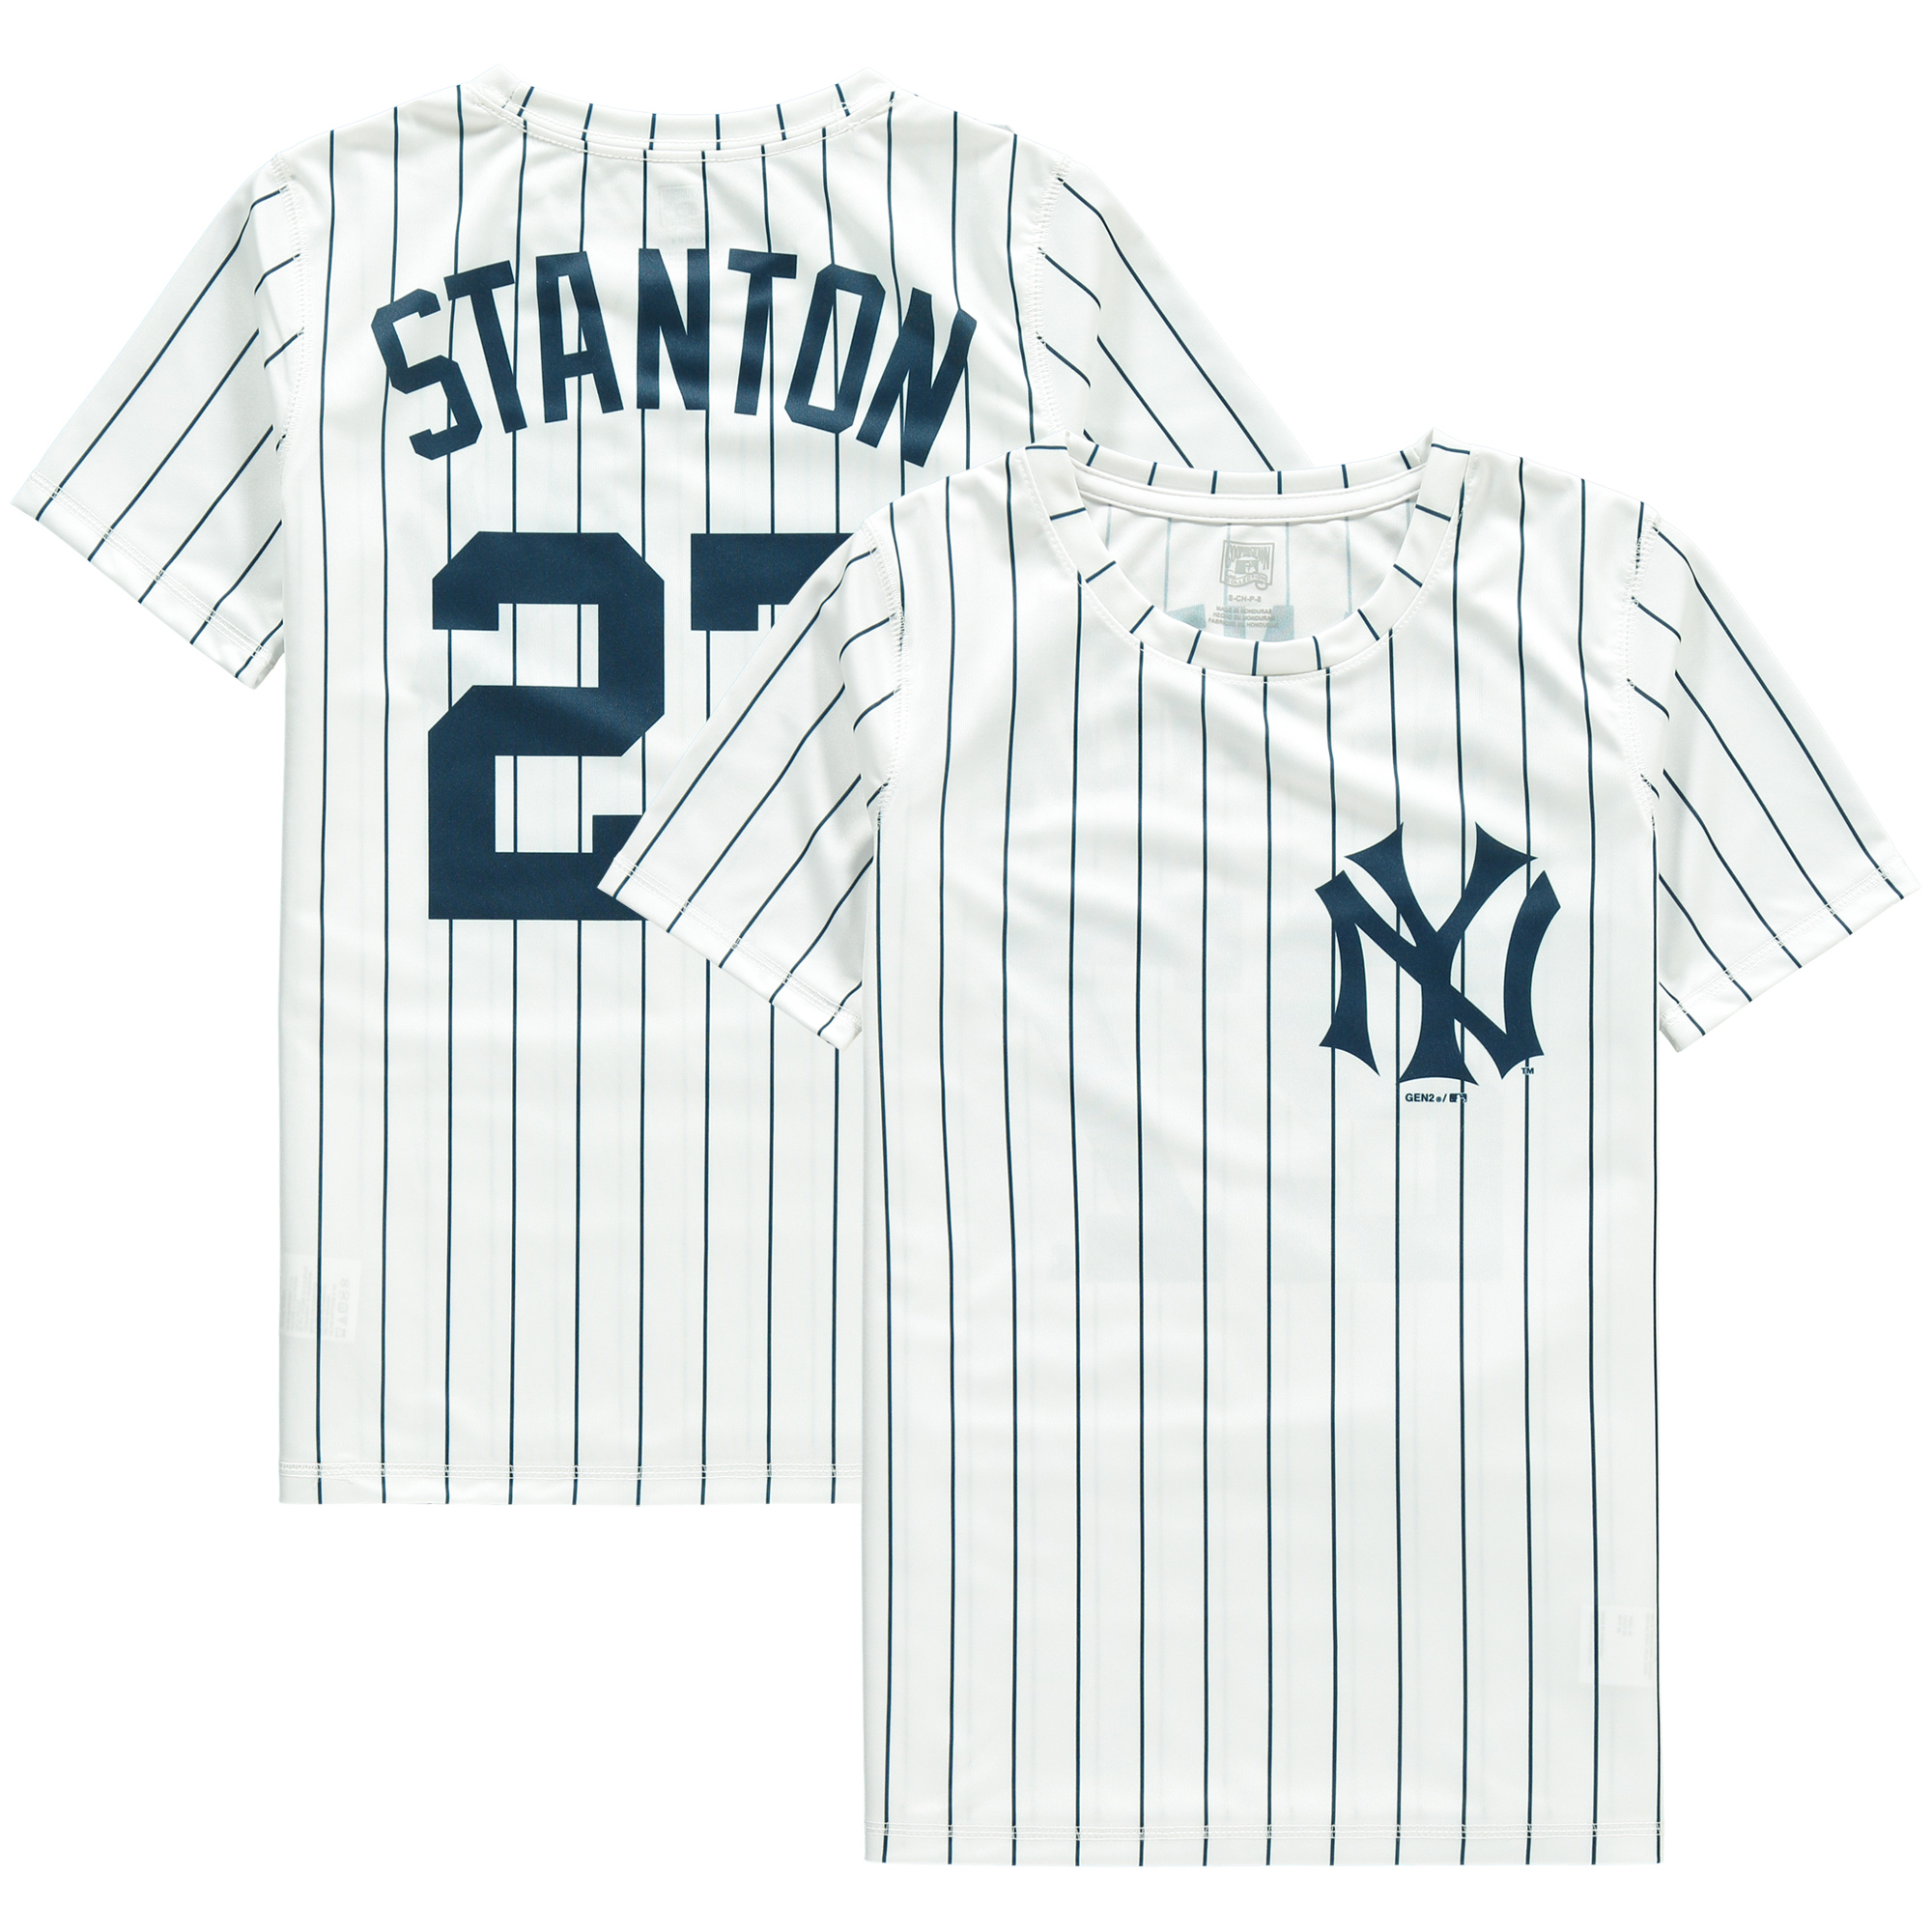 Giancarlo Stanton New York Yankees Youth Cooperstown Player Sublimated Jersey Top - White/Navy